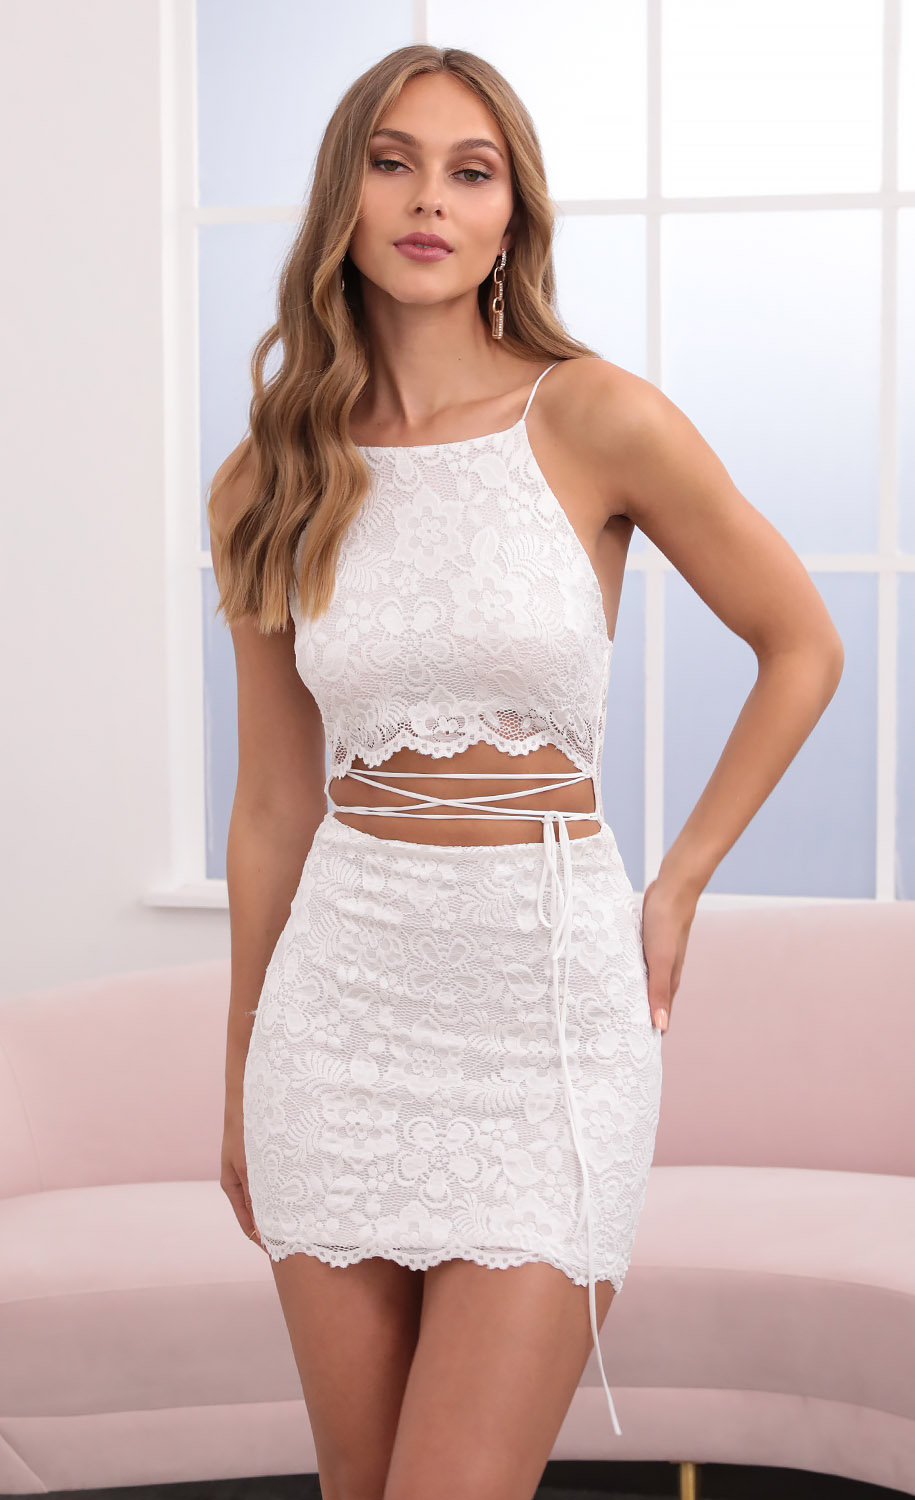 Meghan Halter Wraparound Tied Lace Dress in White